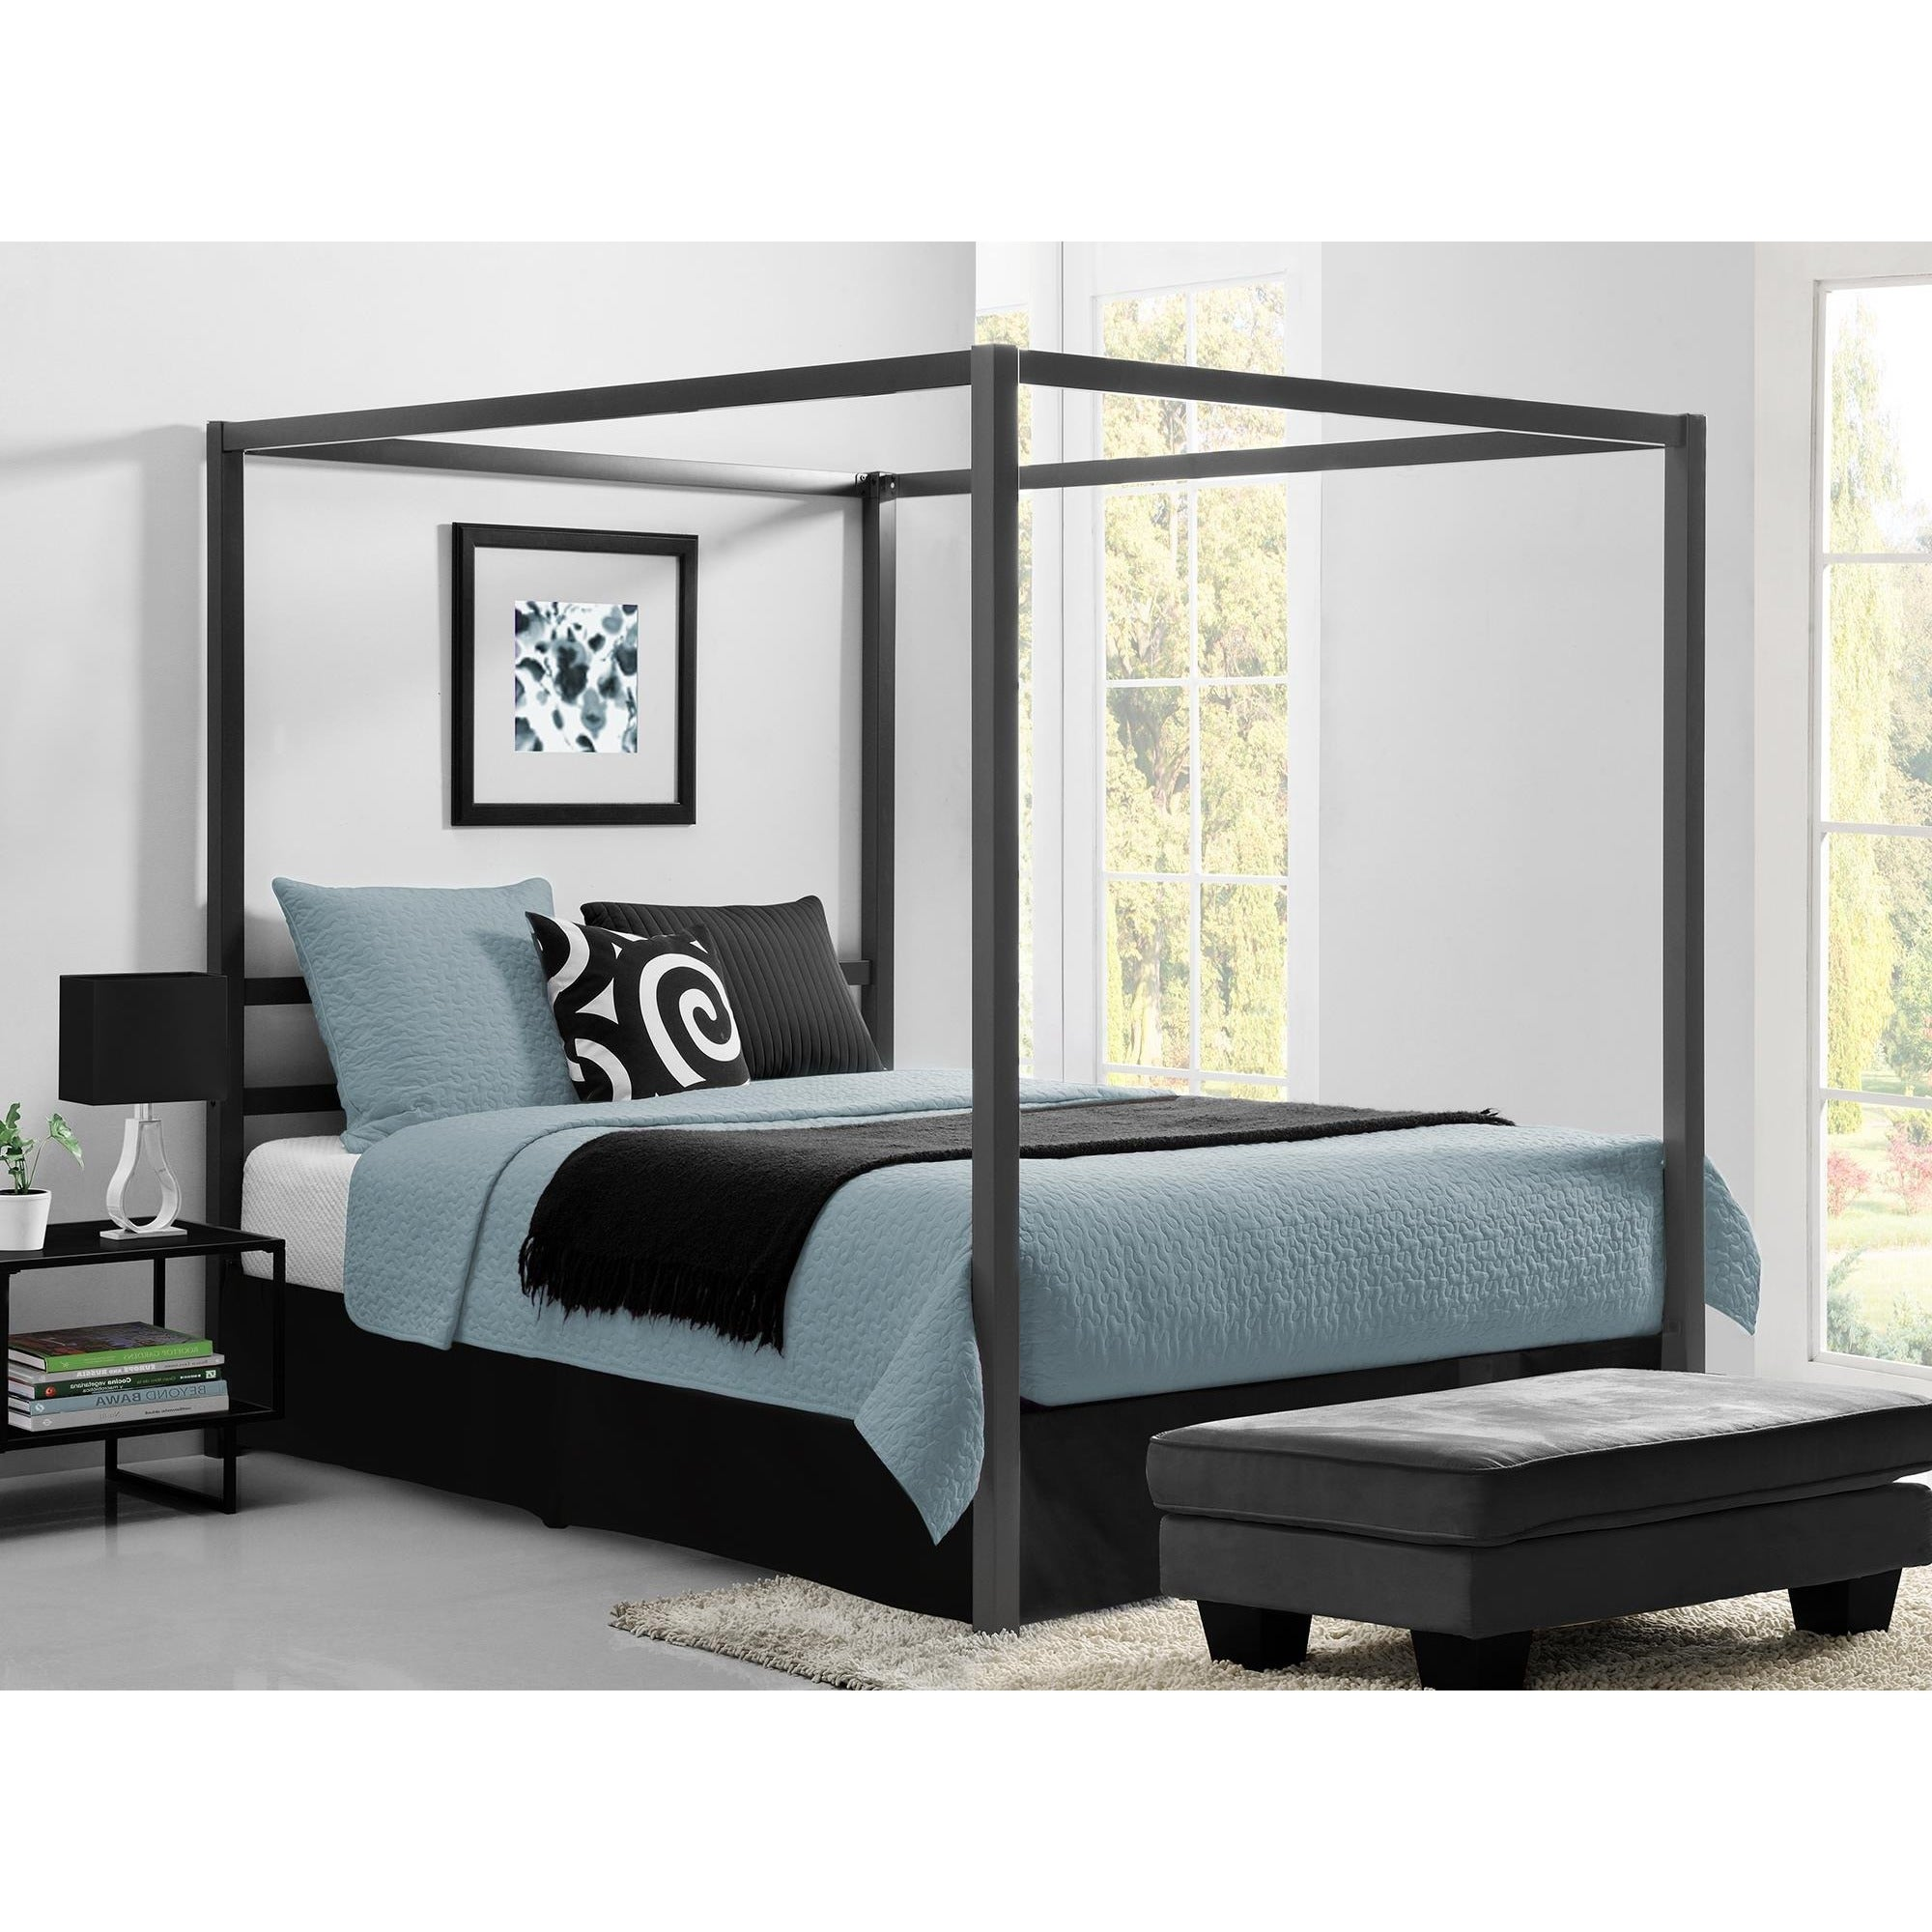 Buy Canopy Bed Online at Overstock | Our Best Bedroom ...